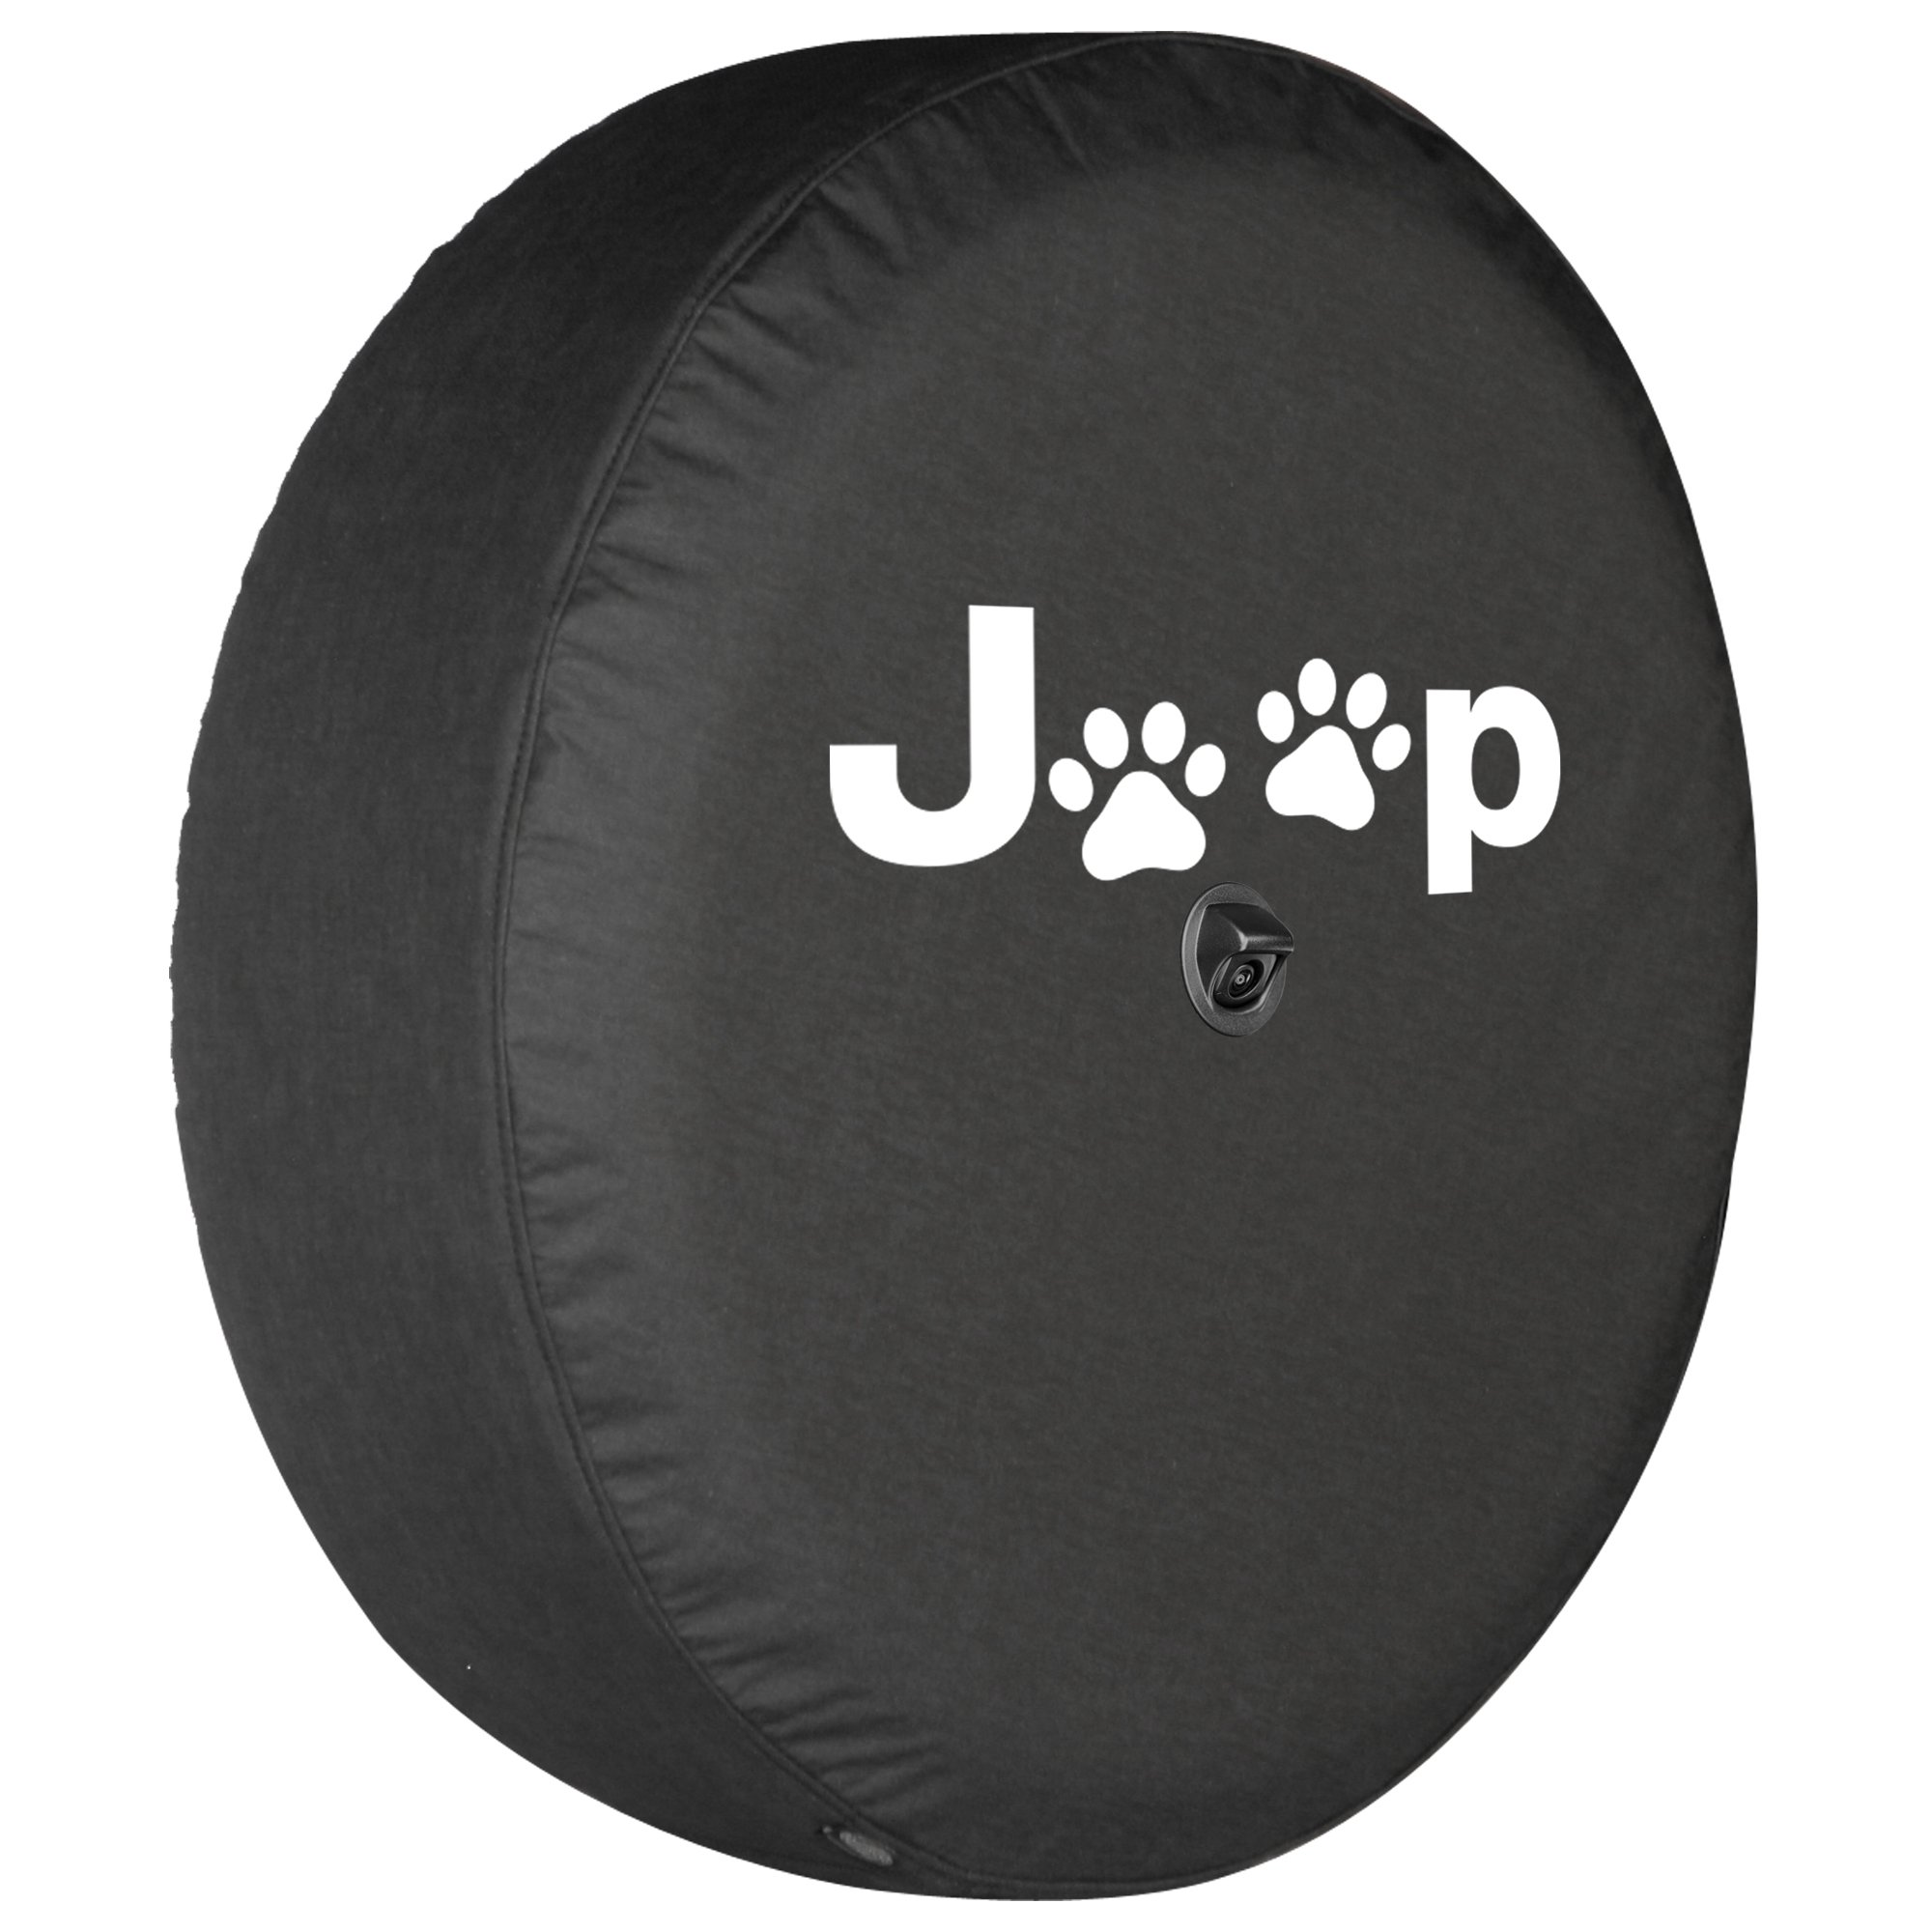 Boomerang 2018 Jeep Wrangler Rubicon JL & JLU - 33'' Soft Tire Cover - Jeep Paws by Boomerang (Image #1)